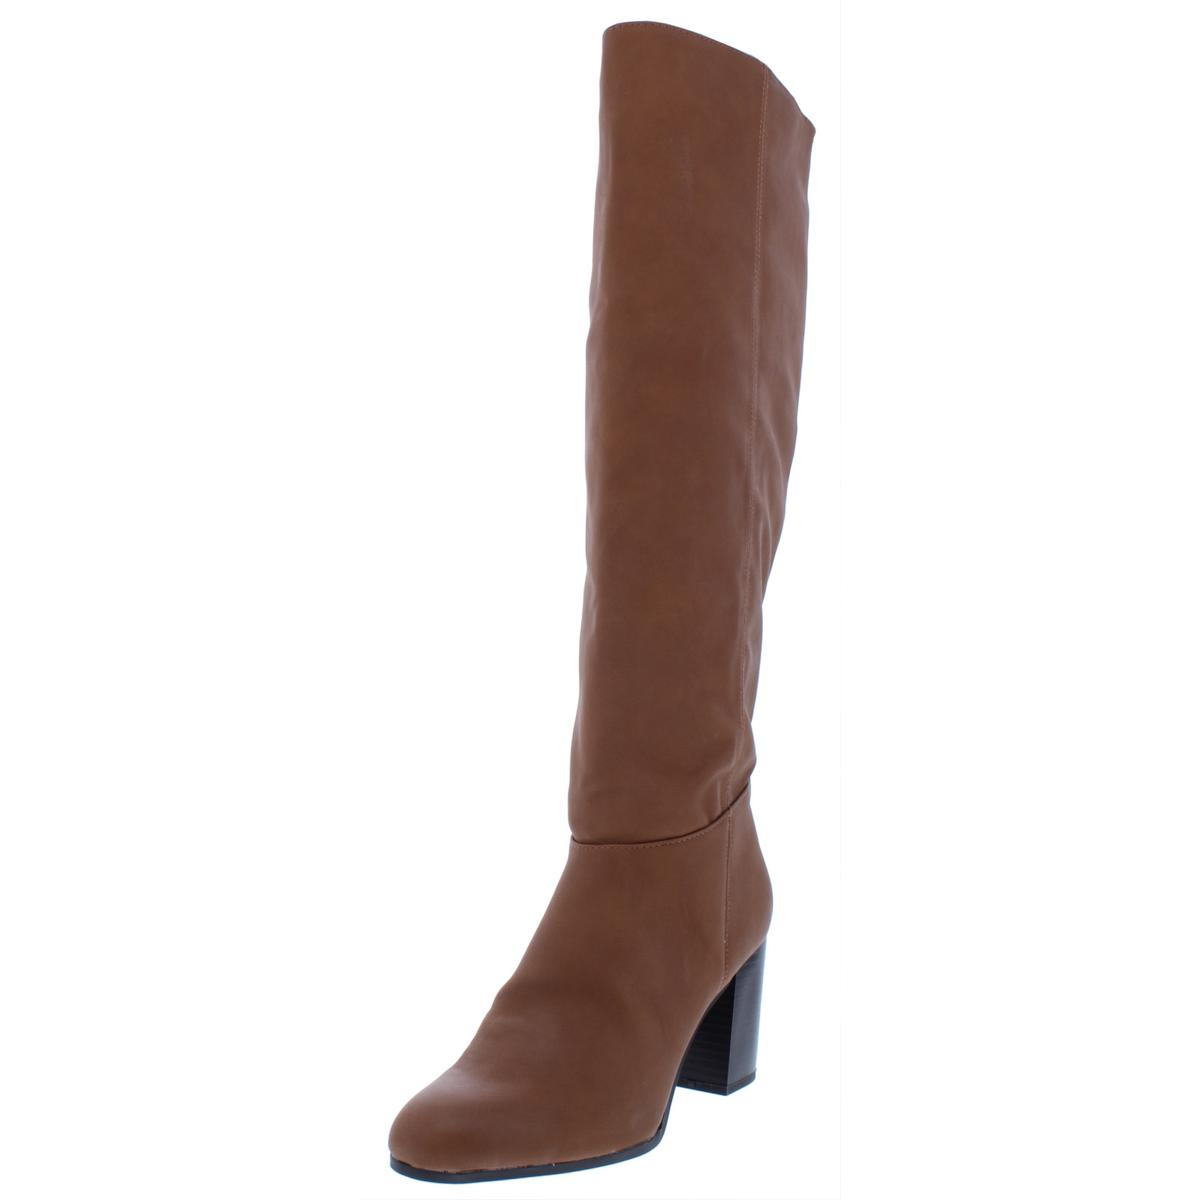 a2fa62623 Circus by Sam Edelman Womens Sibley Brown Riding Boots 10 Medium (B ...